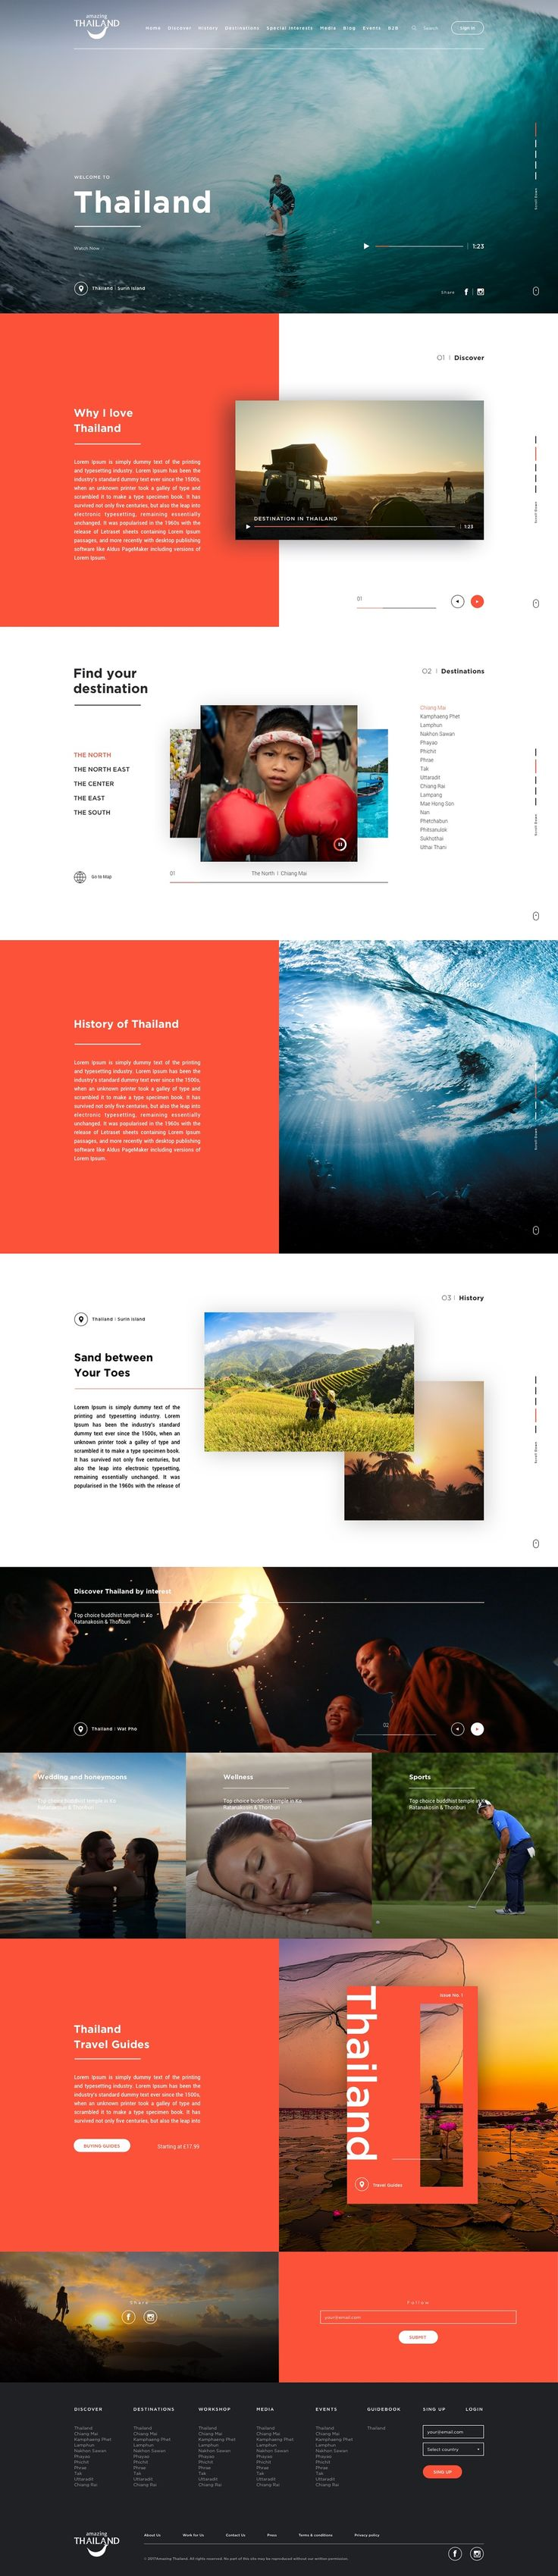 Tourism Authority of Thailand on Behance